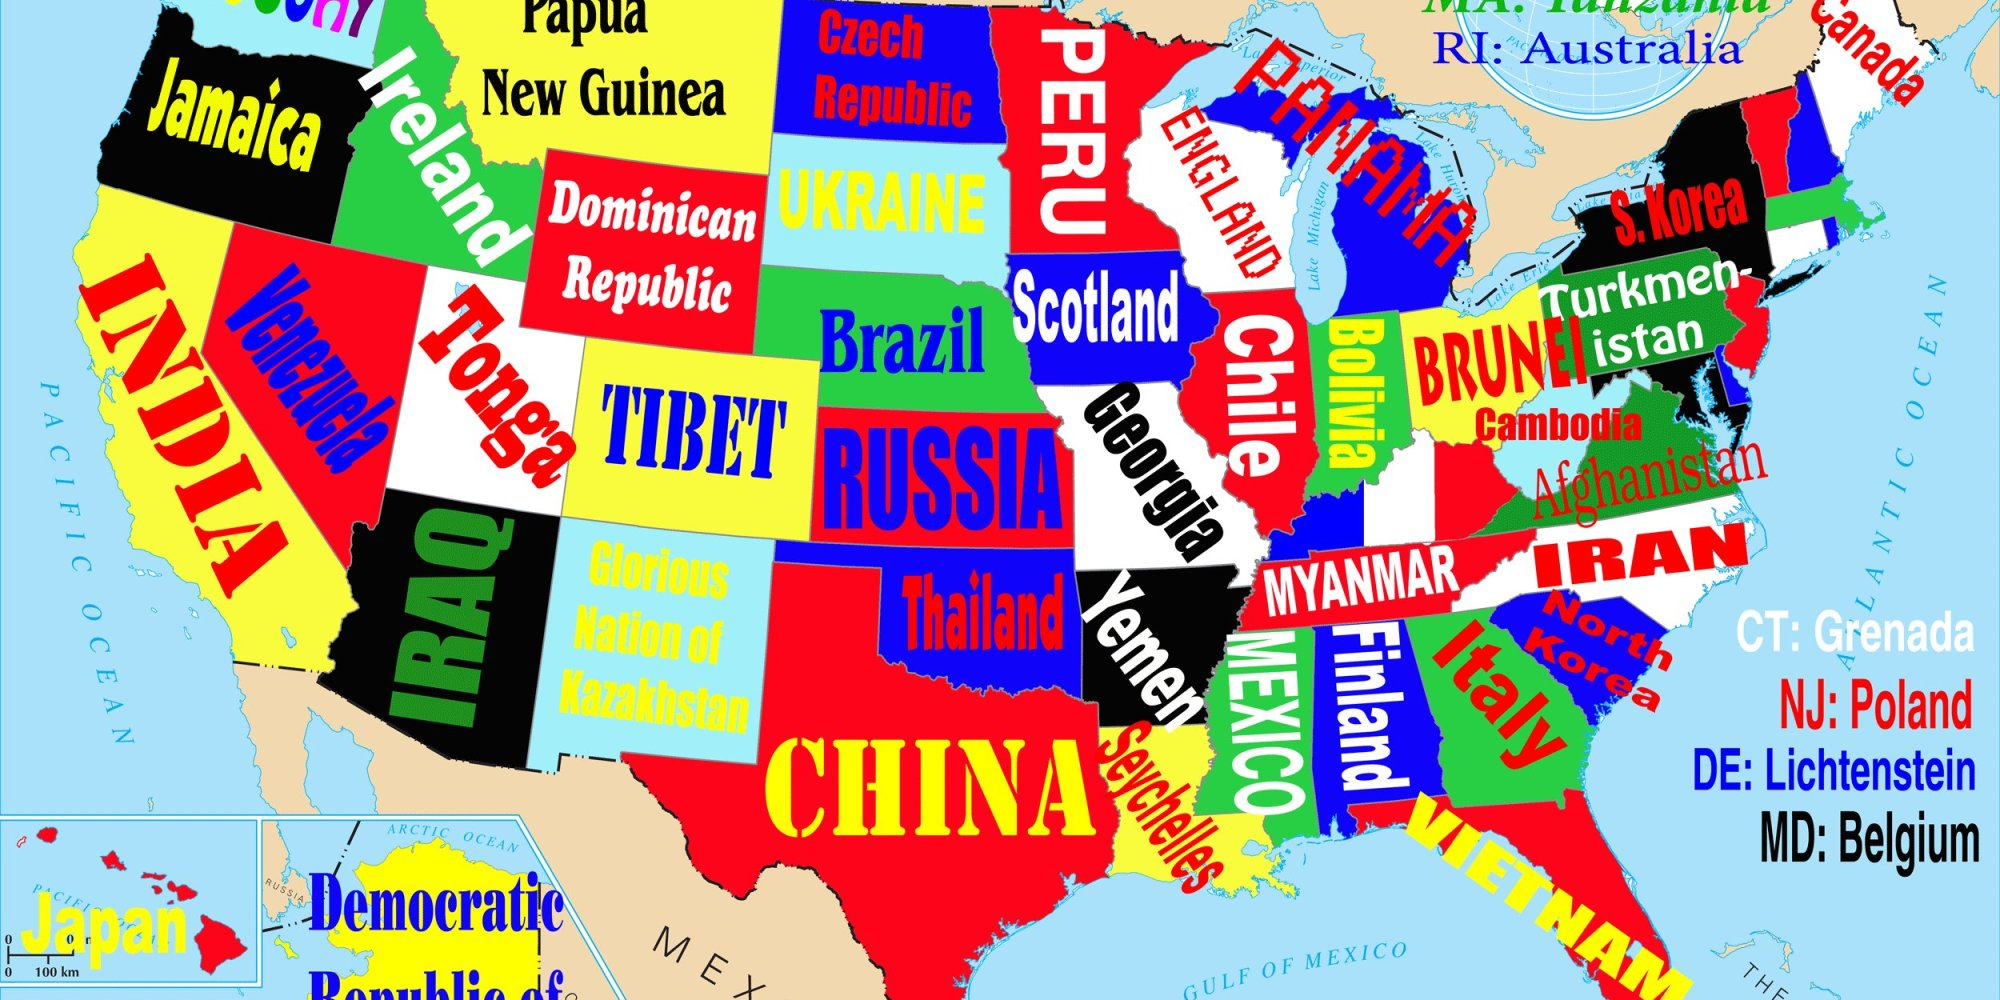 After seeing this map youll never look at your state the same way after seeing this map youll never look at your state the same way again huffpost gumiabroncs Images